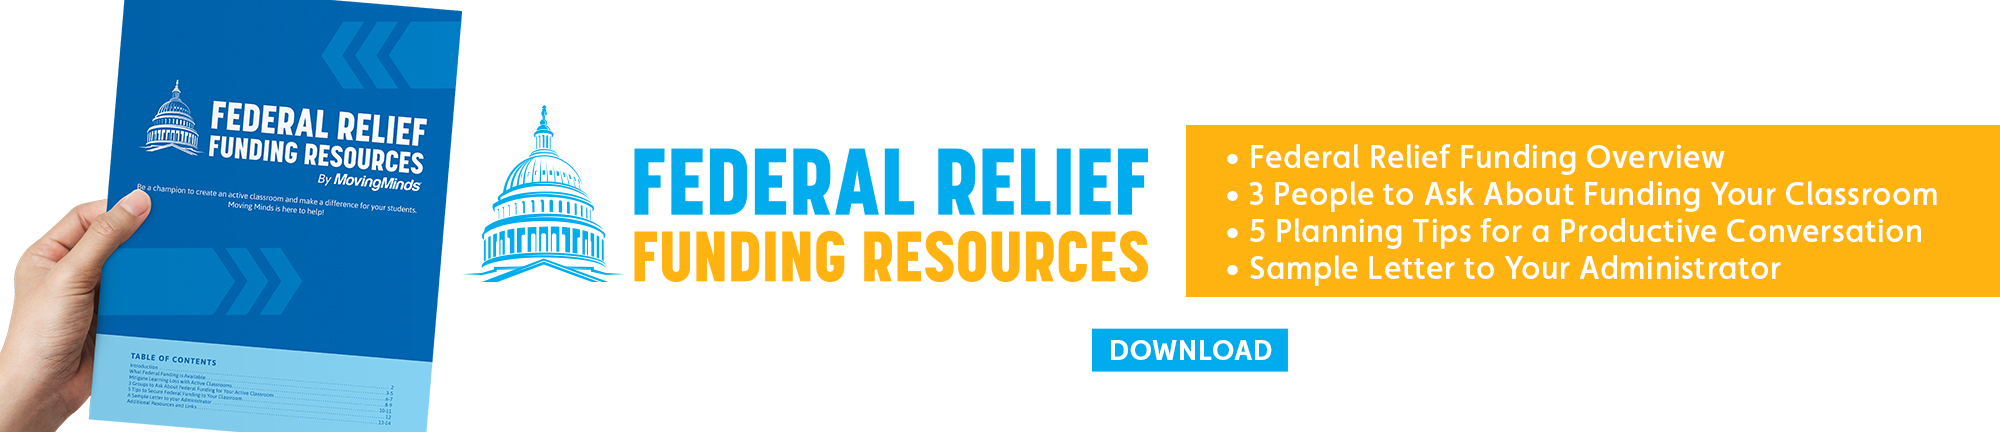 Moving Minds Federal Relief Funding Toolkit